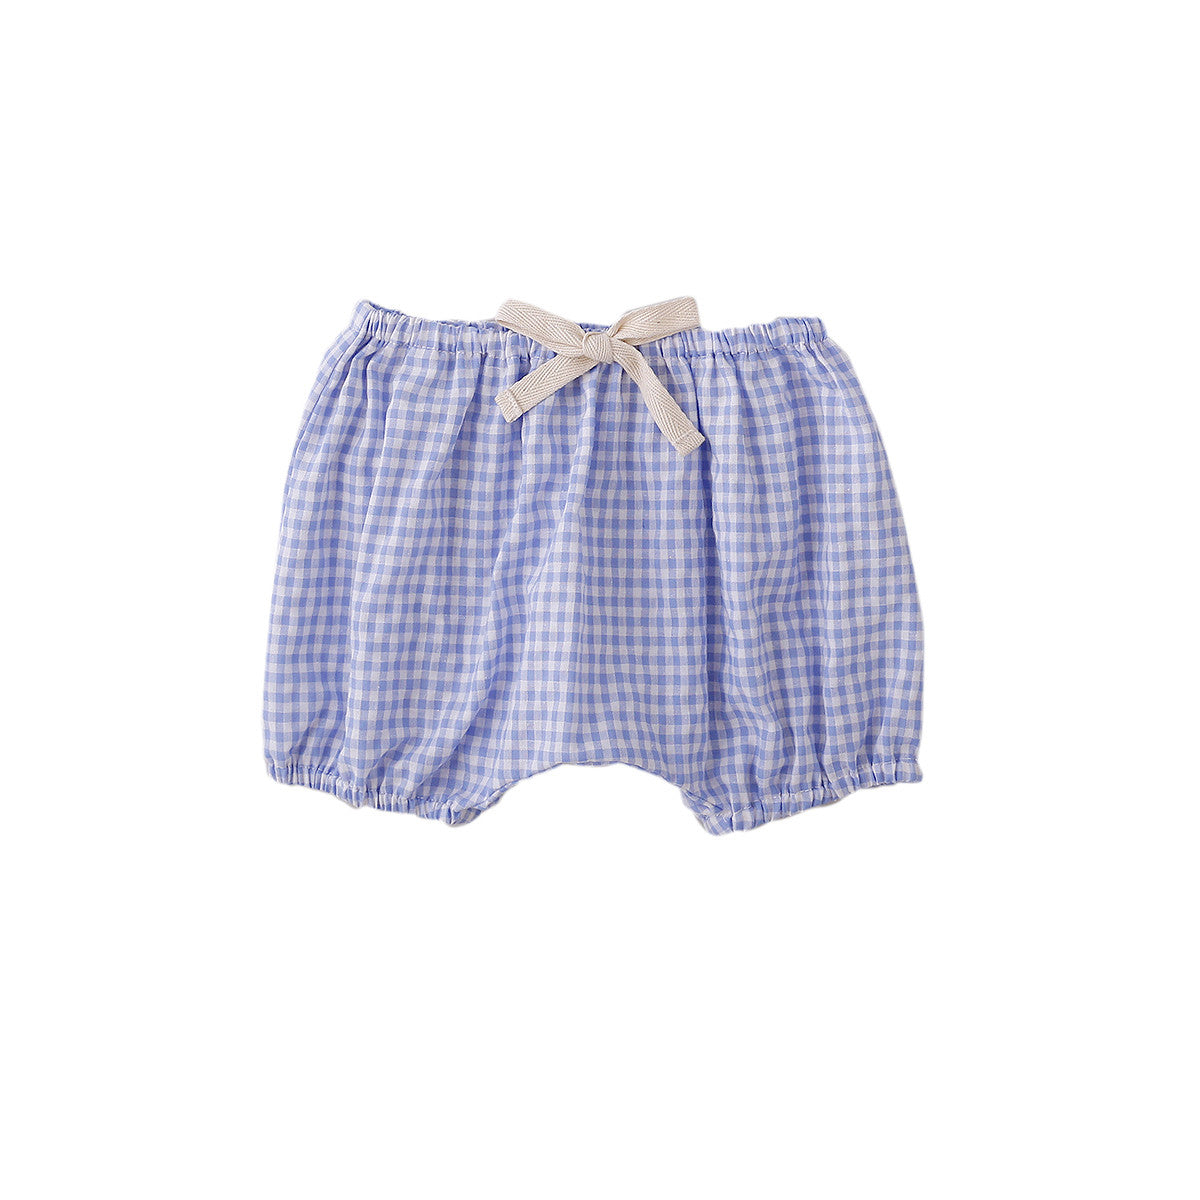 CLOVE NAPPY COVER IN BLUE GINGHAM